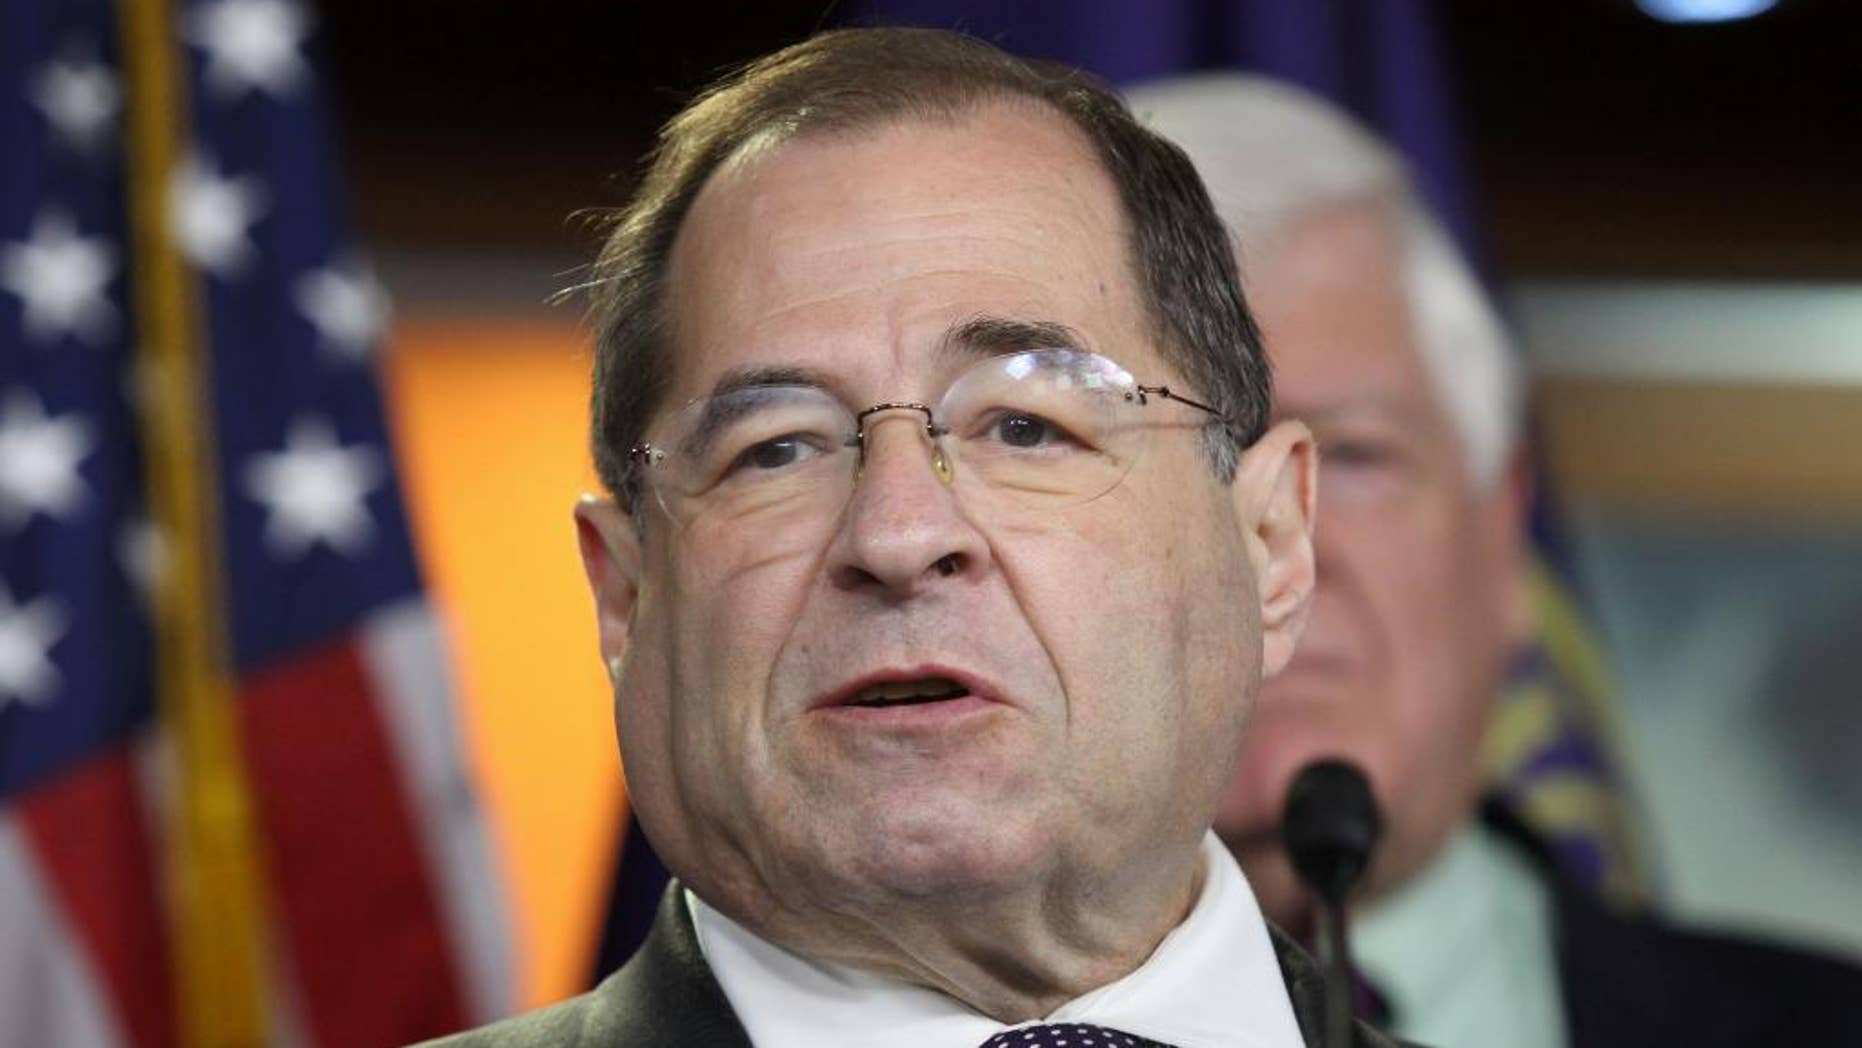 Rep. Jerrold Nadler, D-N.Y., said the House Judiciary Committee would investigate Brett Kavanaugh if he's confirmed to the Supreme Court and Democrats regain control of the House.